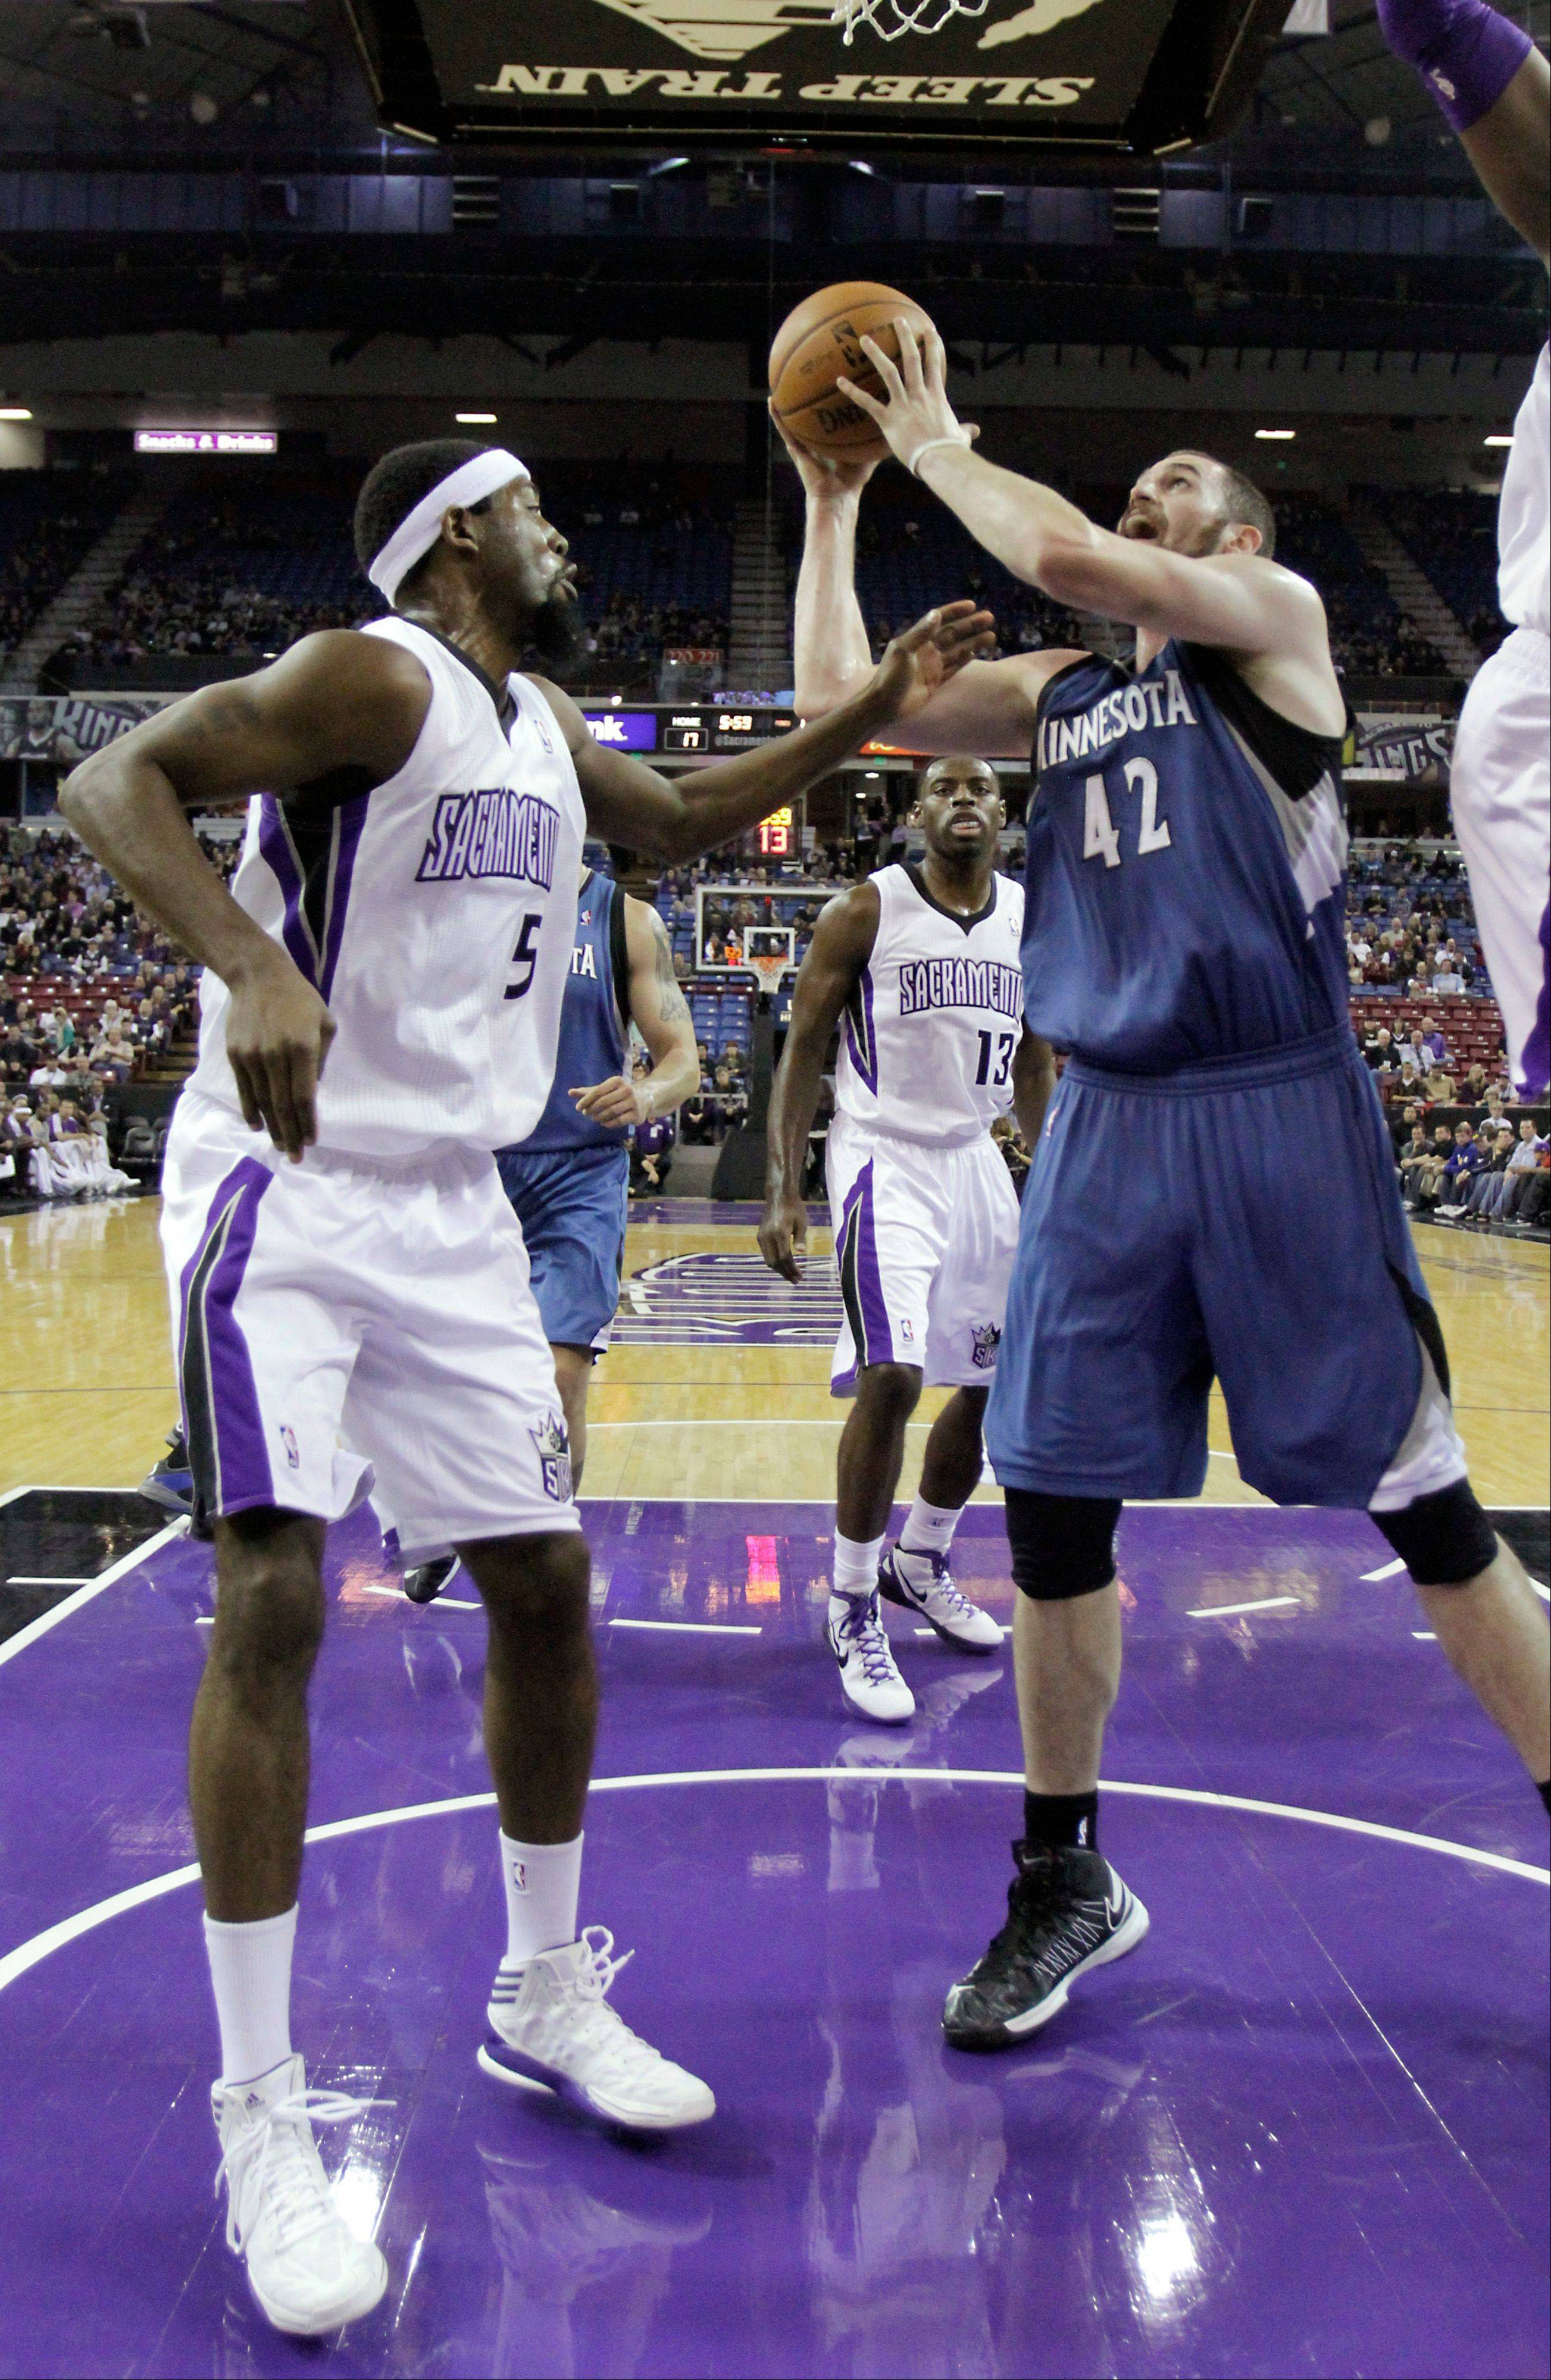 Minnesota Timberwolves forward Kevin Love, right, shoots against Sacramento Kings forward John Salmons, left, Tuesday during the first quarter in Sacramento, Calif.